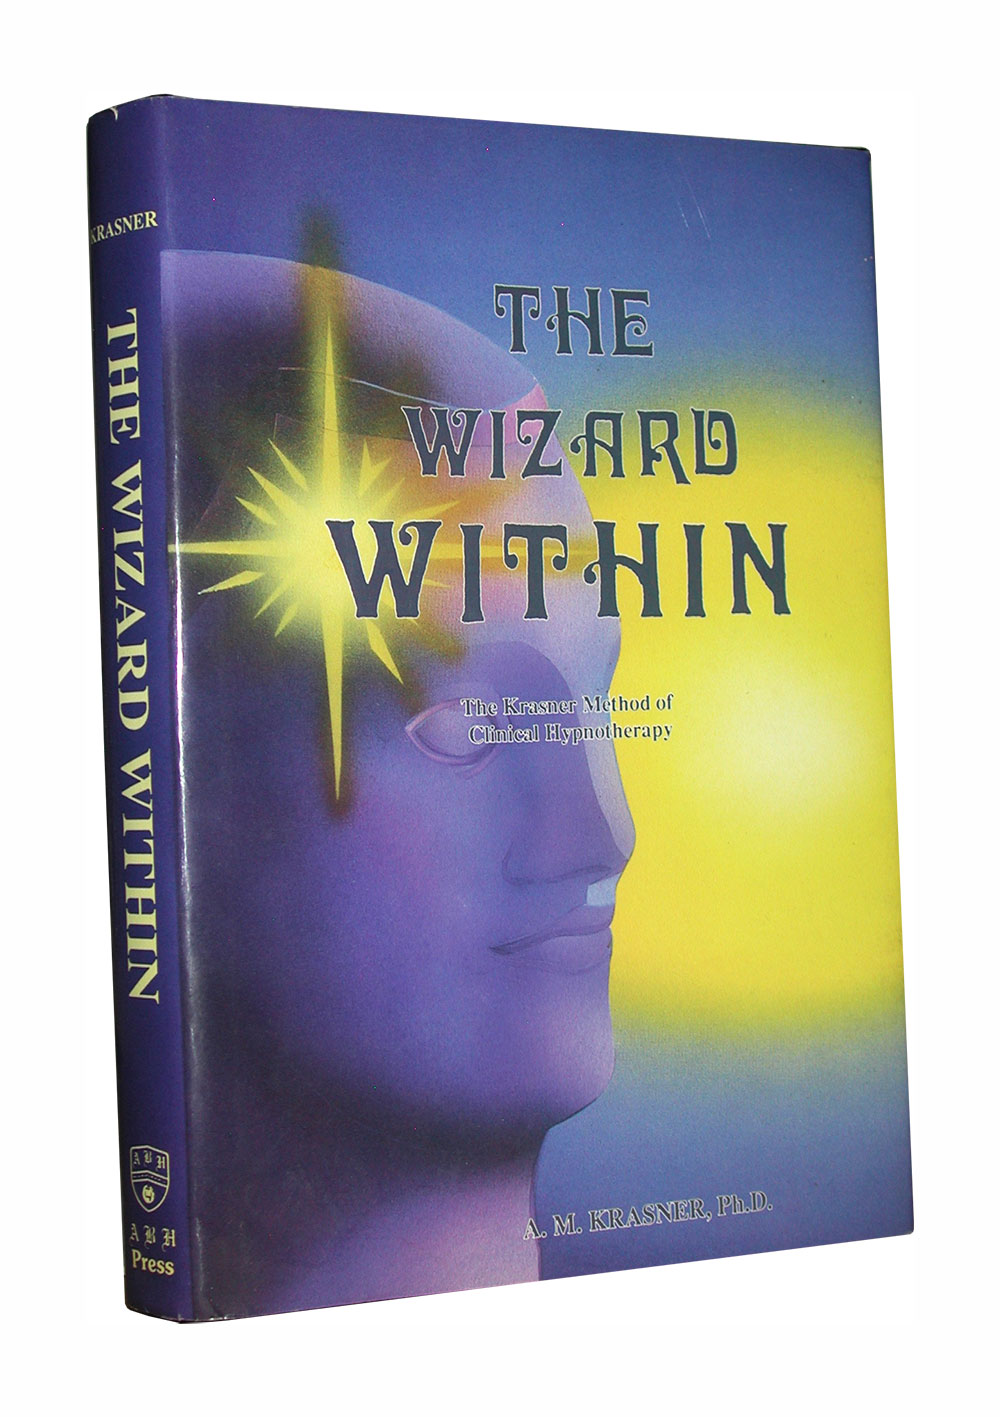 The Wizard Within: The Krasner Method Of Clinical Hypnotherapy. Signed